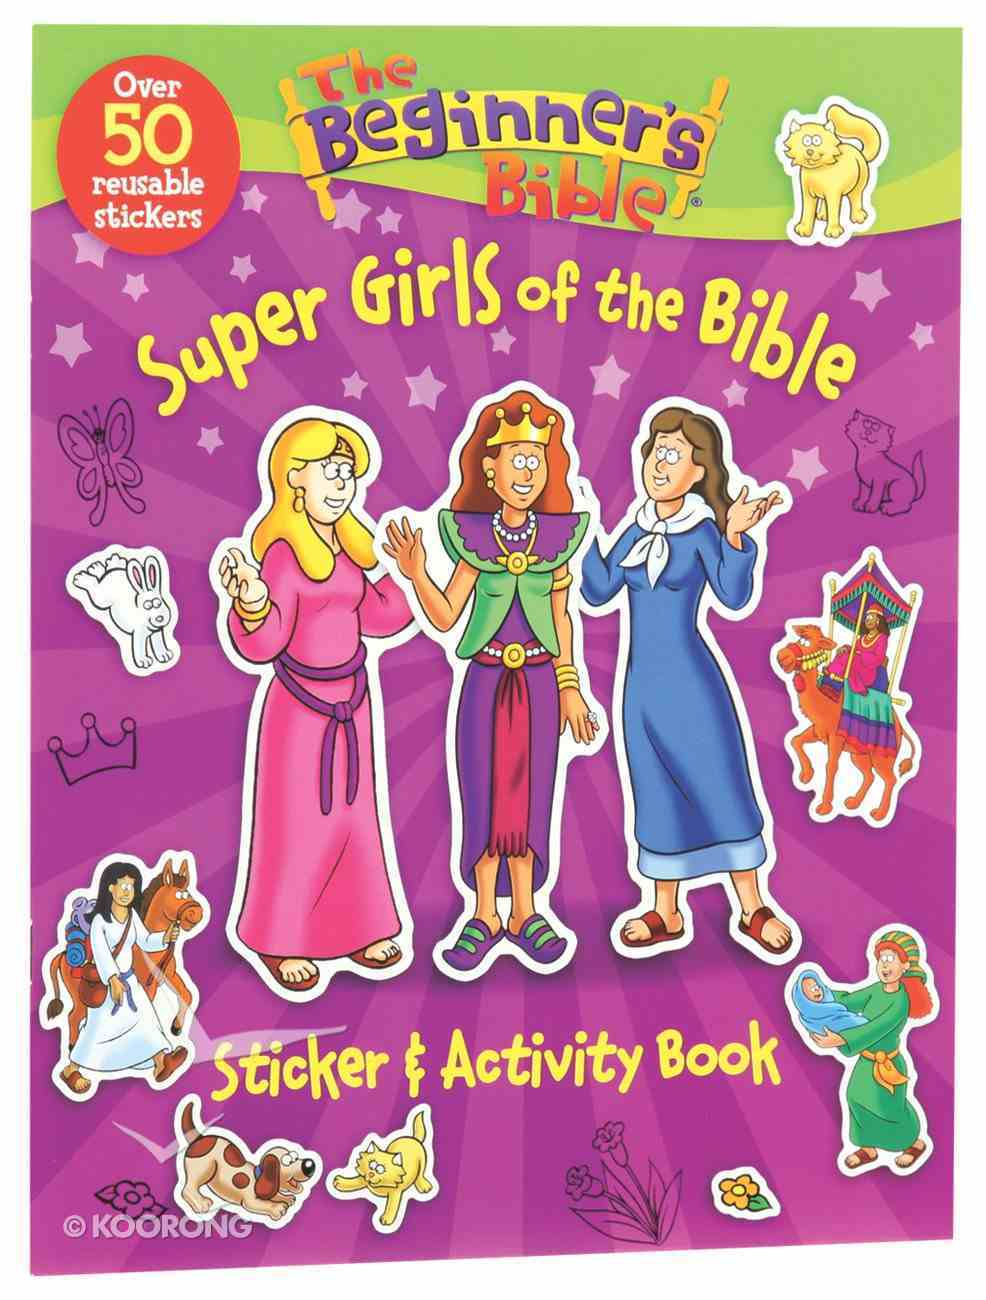 Beginner's Bible: A Super Girls of the Bible Sticker and Activity Book Paperback